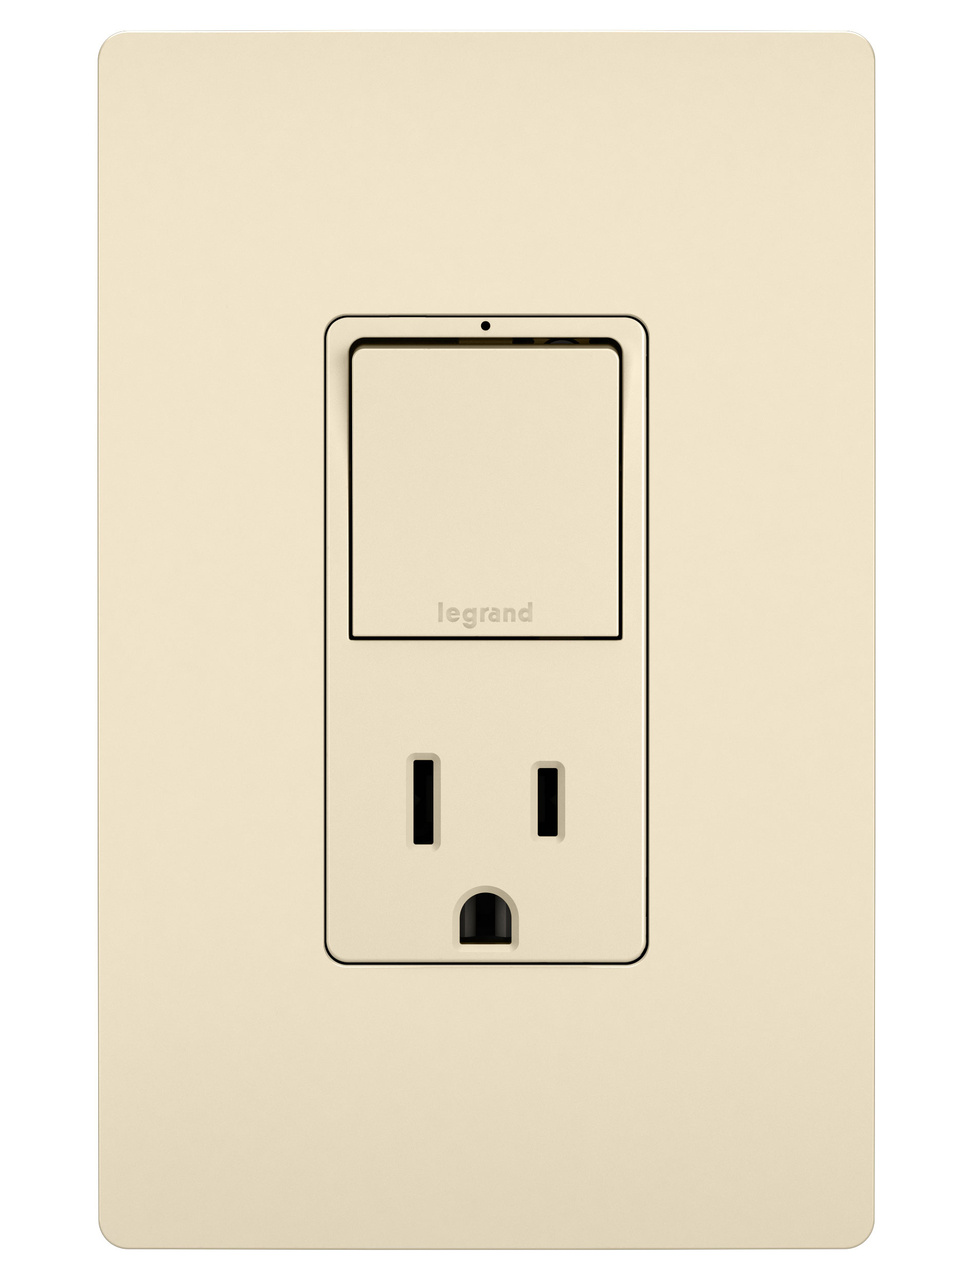 Radiant Rcd38trla Combo Single Pole 3 Way Switch 15a Tr Outlet Electrical Light Almond Legrand